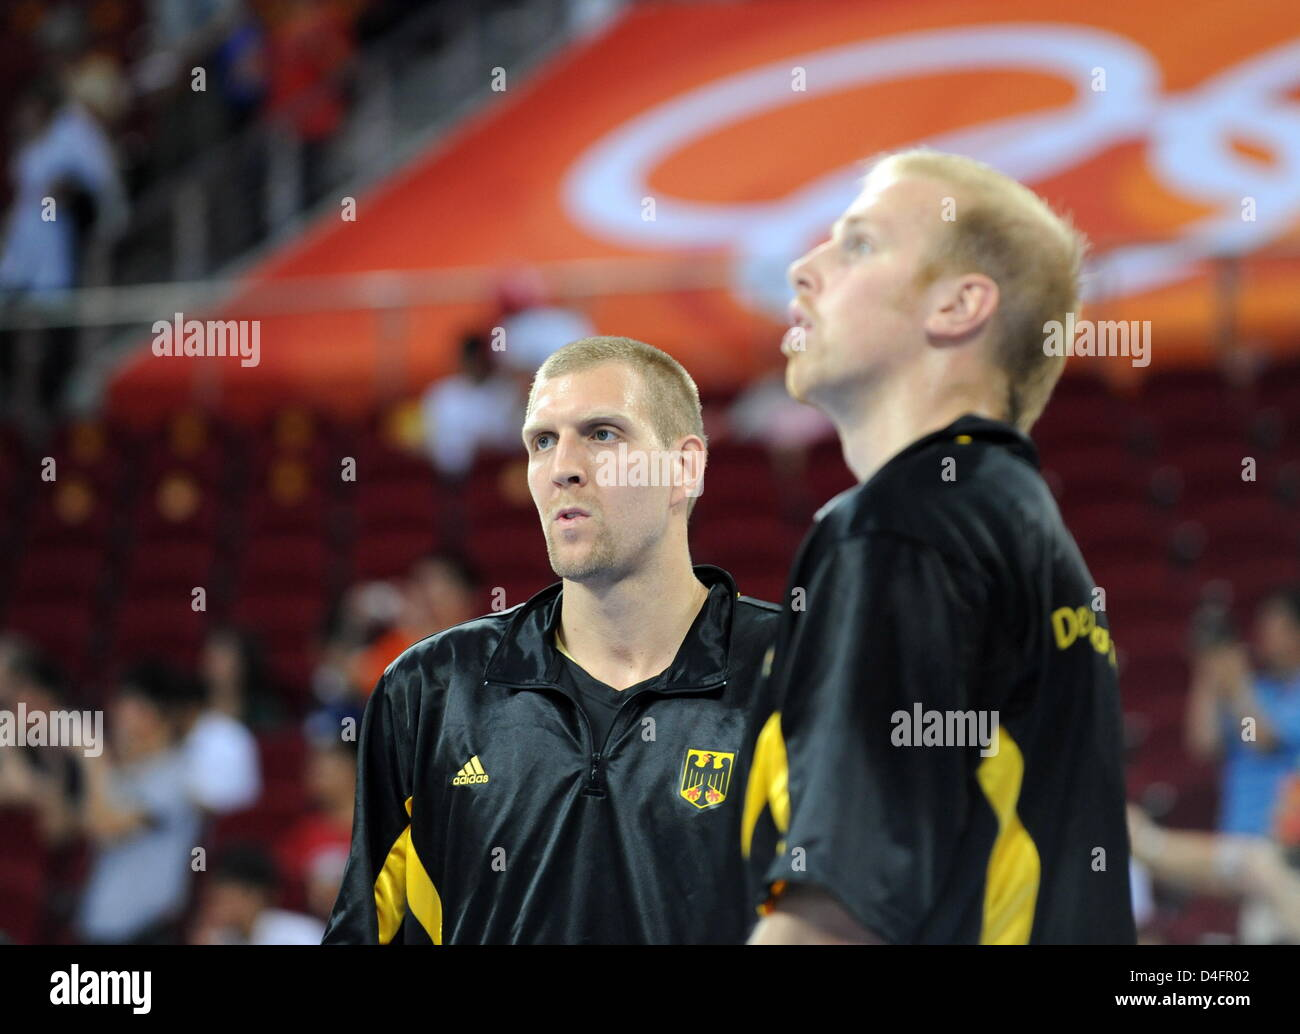 Dirk Nowitzki L and Chris Kaman of Germany during the men's